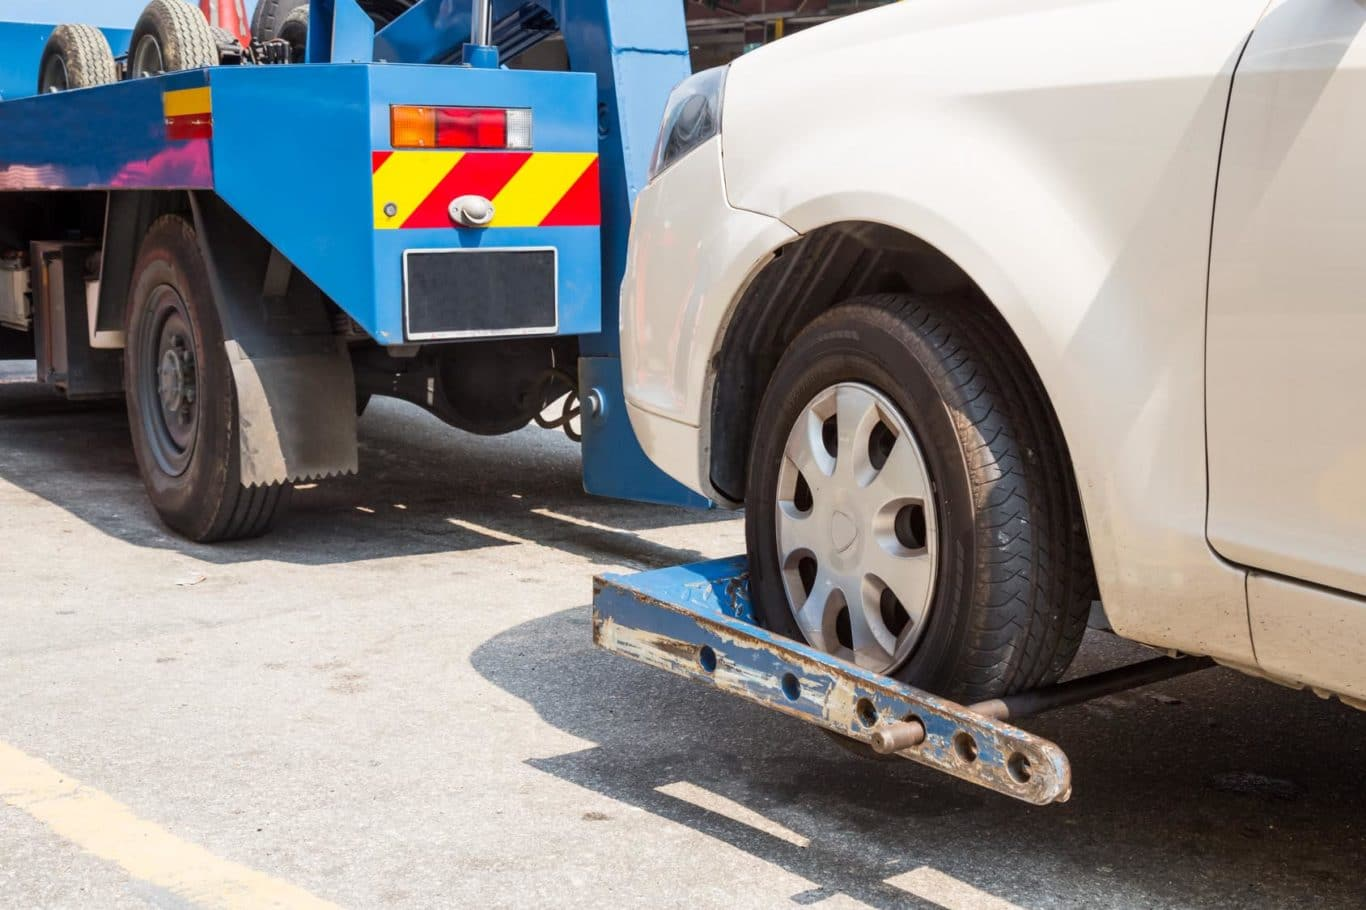 Moone expert Car Recovery services